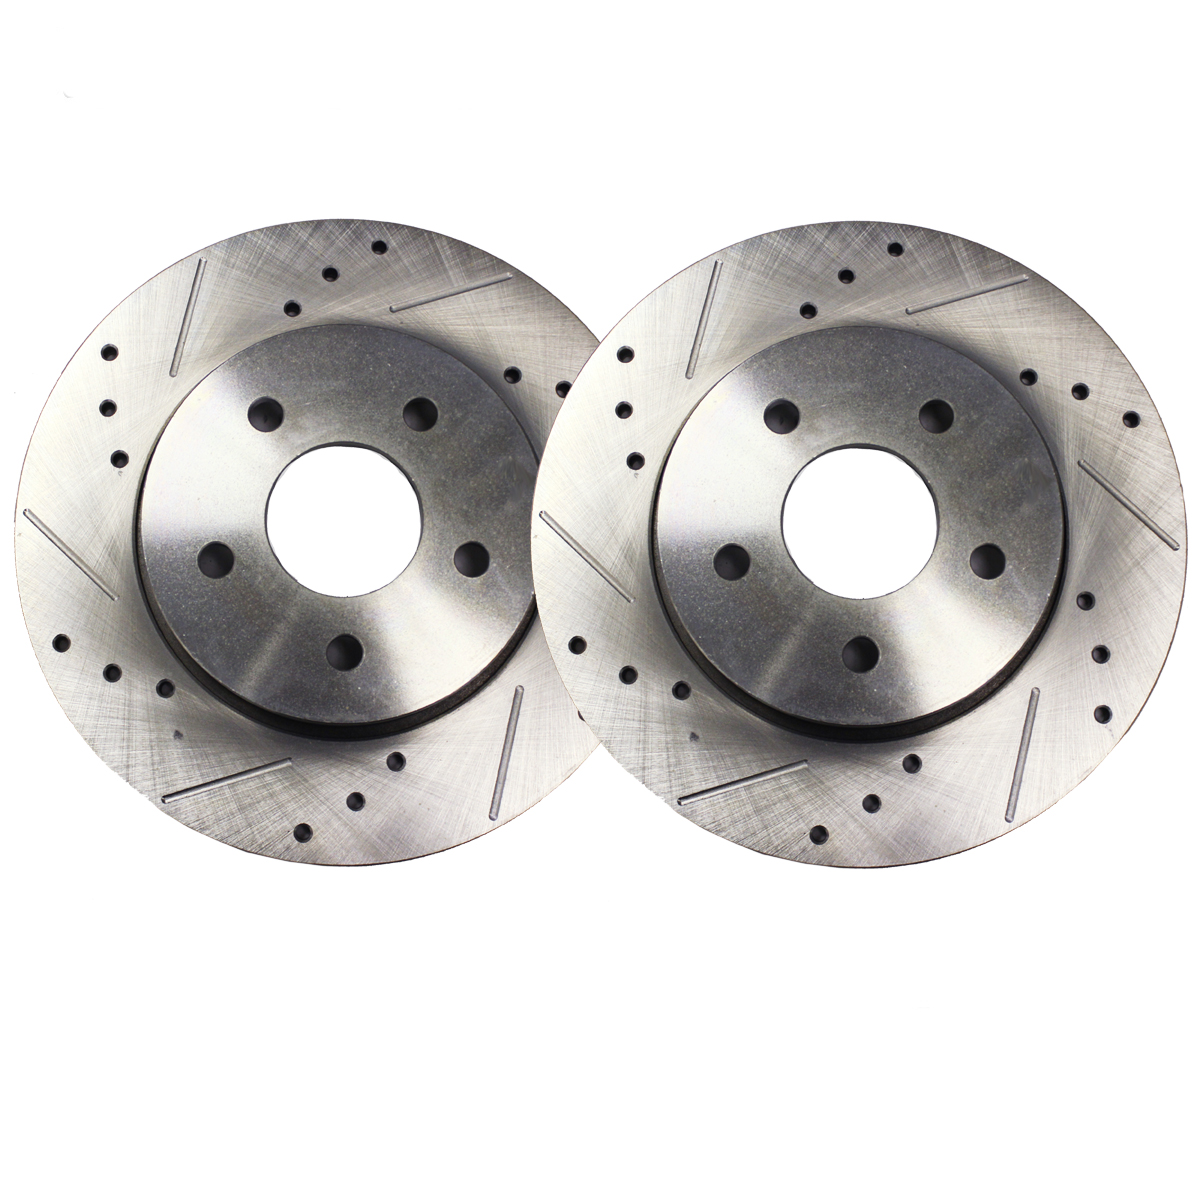 Front Drilled and Slotted Brake Rotors #S-54196 - Ford/Lincoln